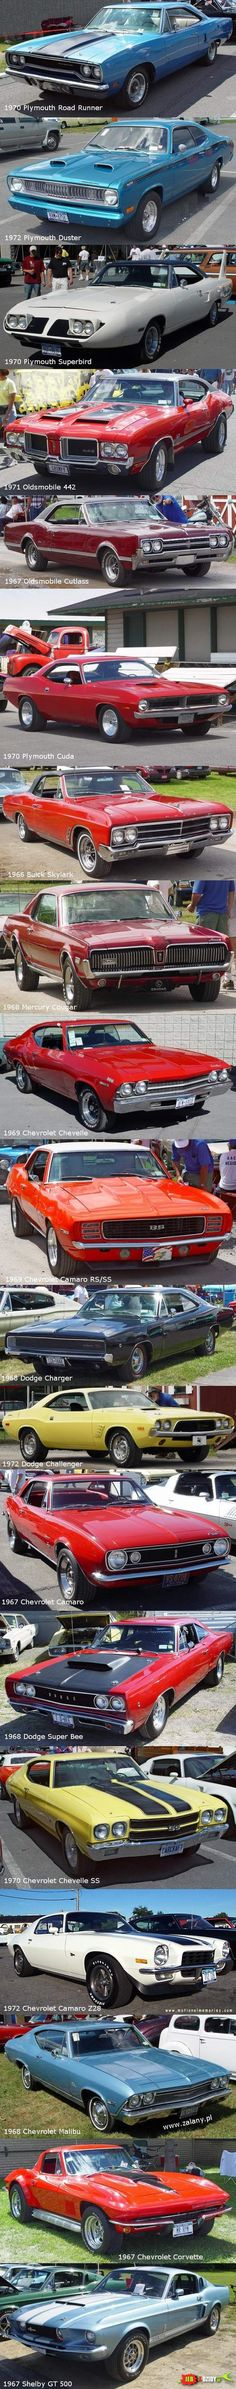 all in one muscle cars in one pic .....(no need to pin muscle cars anymore)...LOL